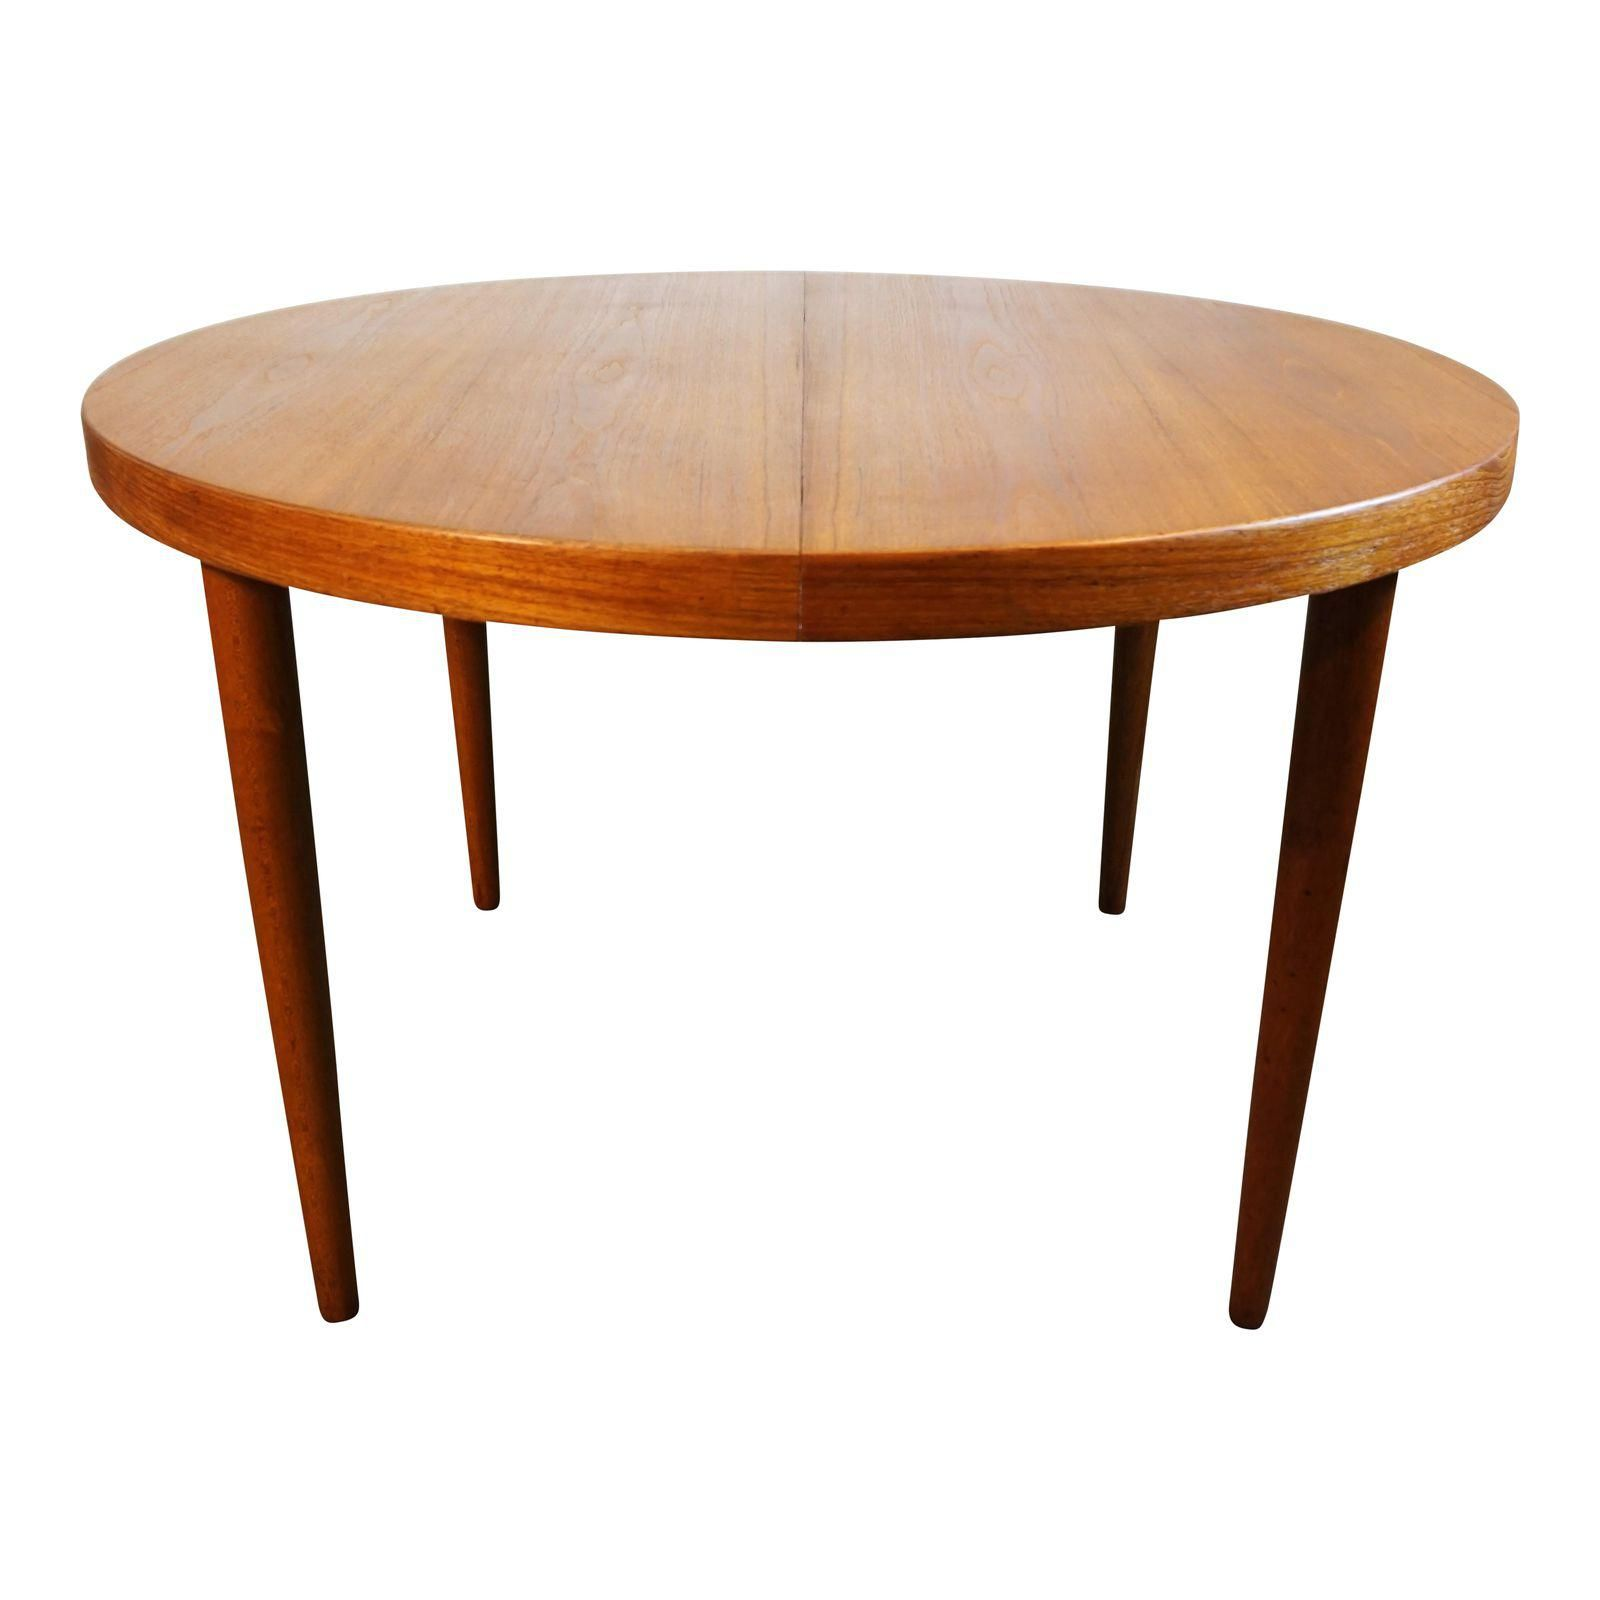 Couchtisch Baltimore Danish Round Teak Table With Secret Drawer Skjold Image 1 Of 8